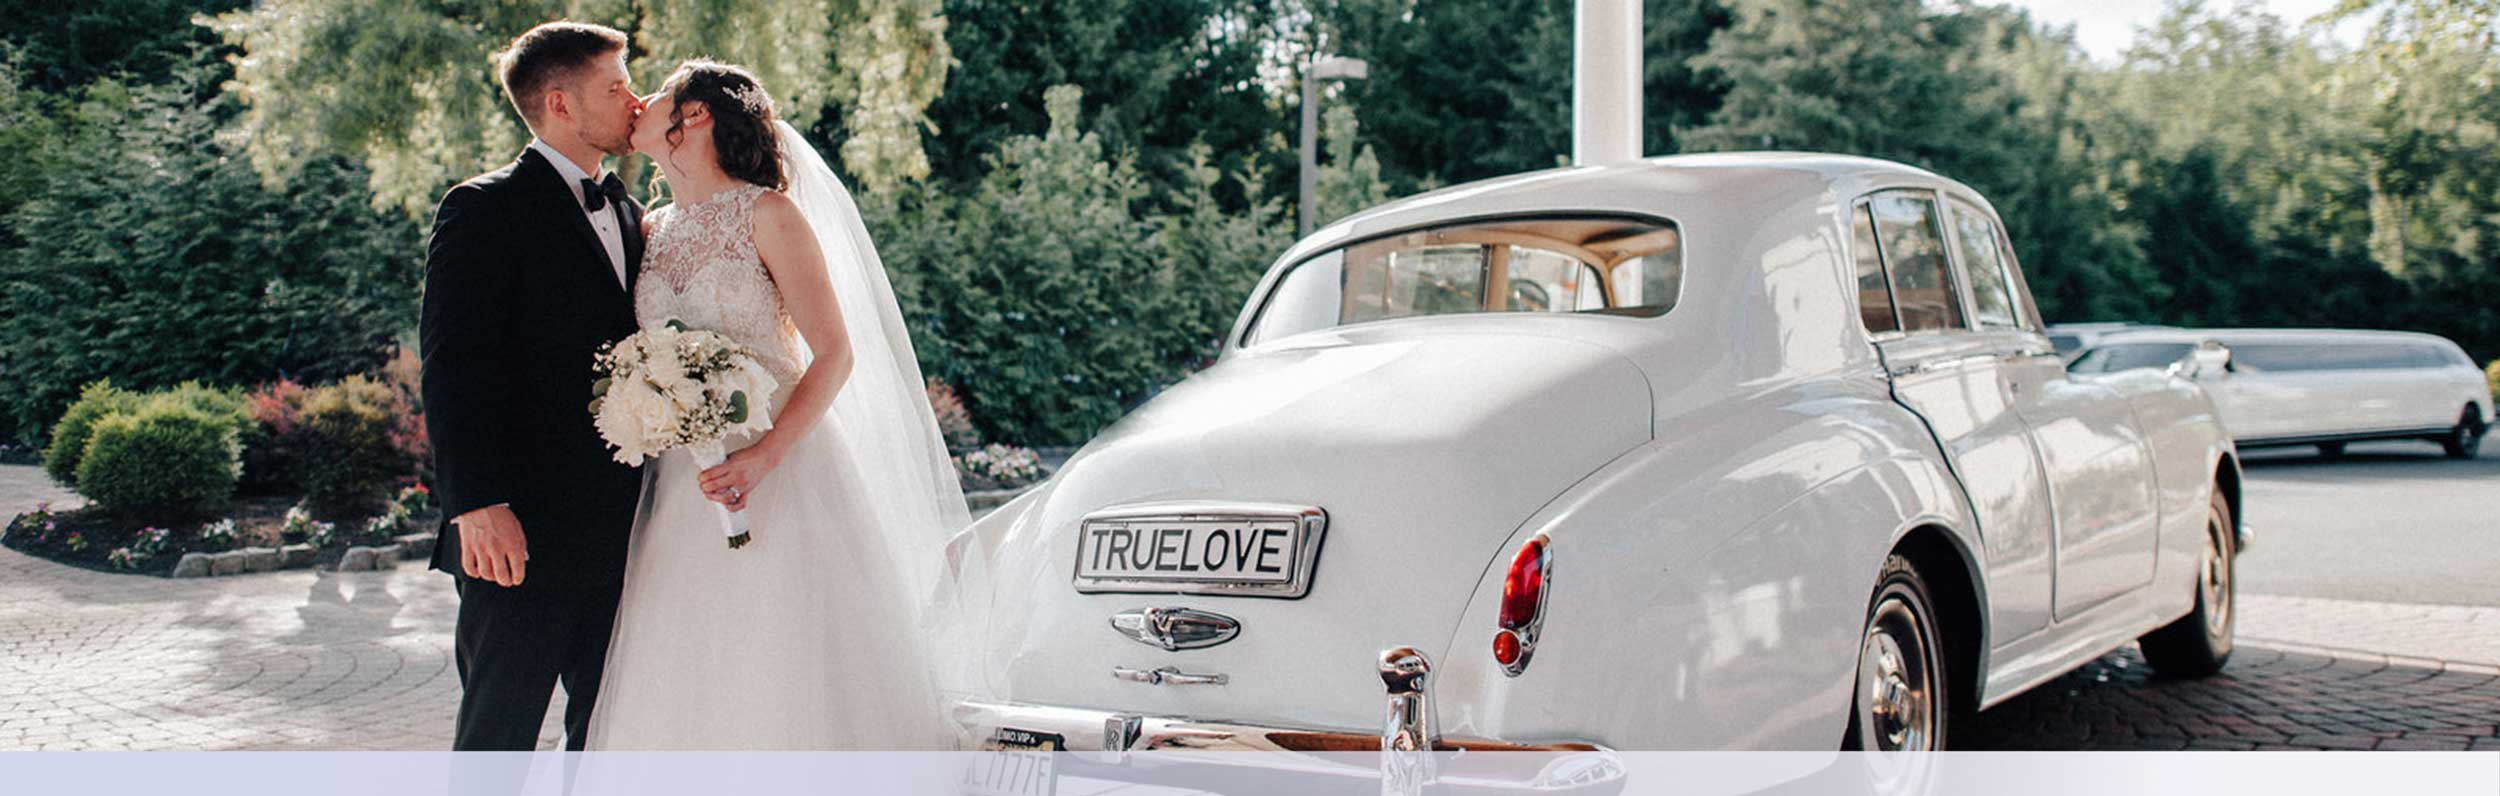 Vintage Car Wedding Reception Drop Off